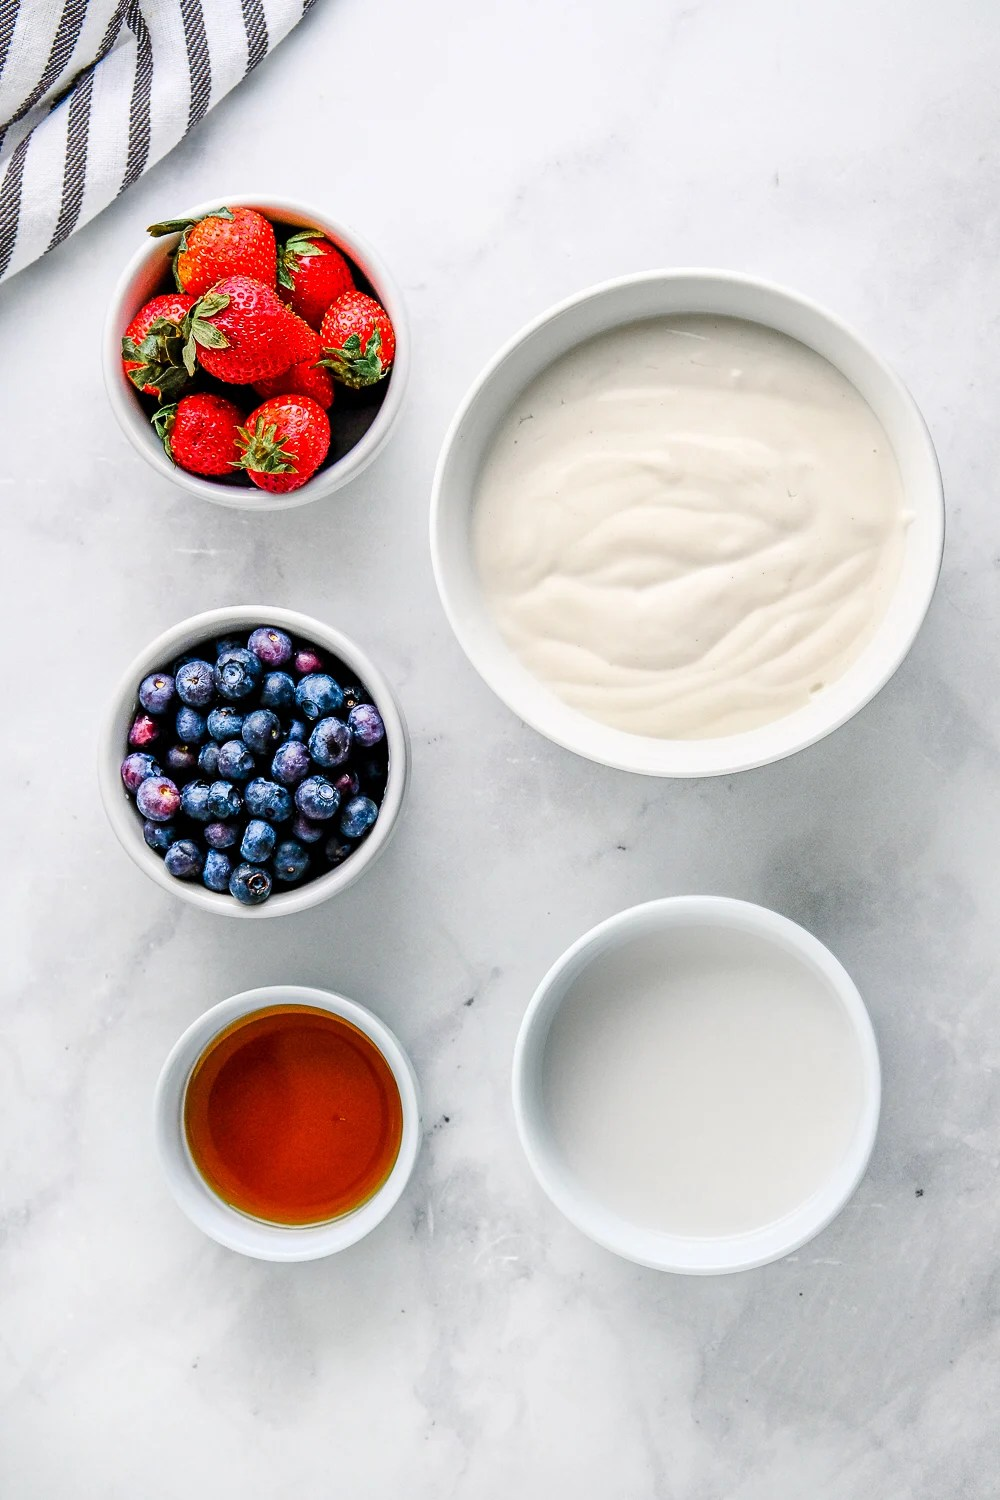 Ingredients needed to make Yogurt Bark